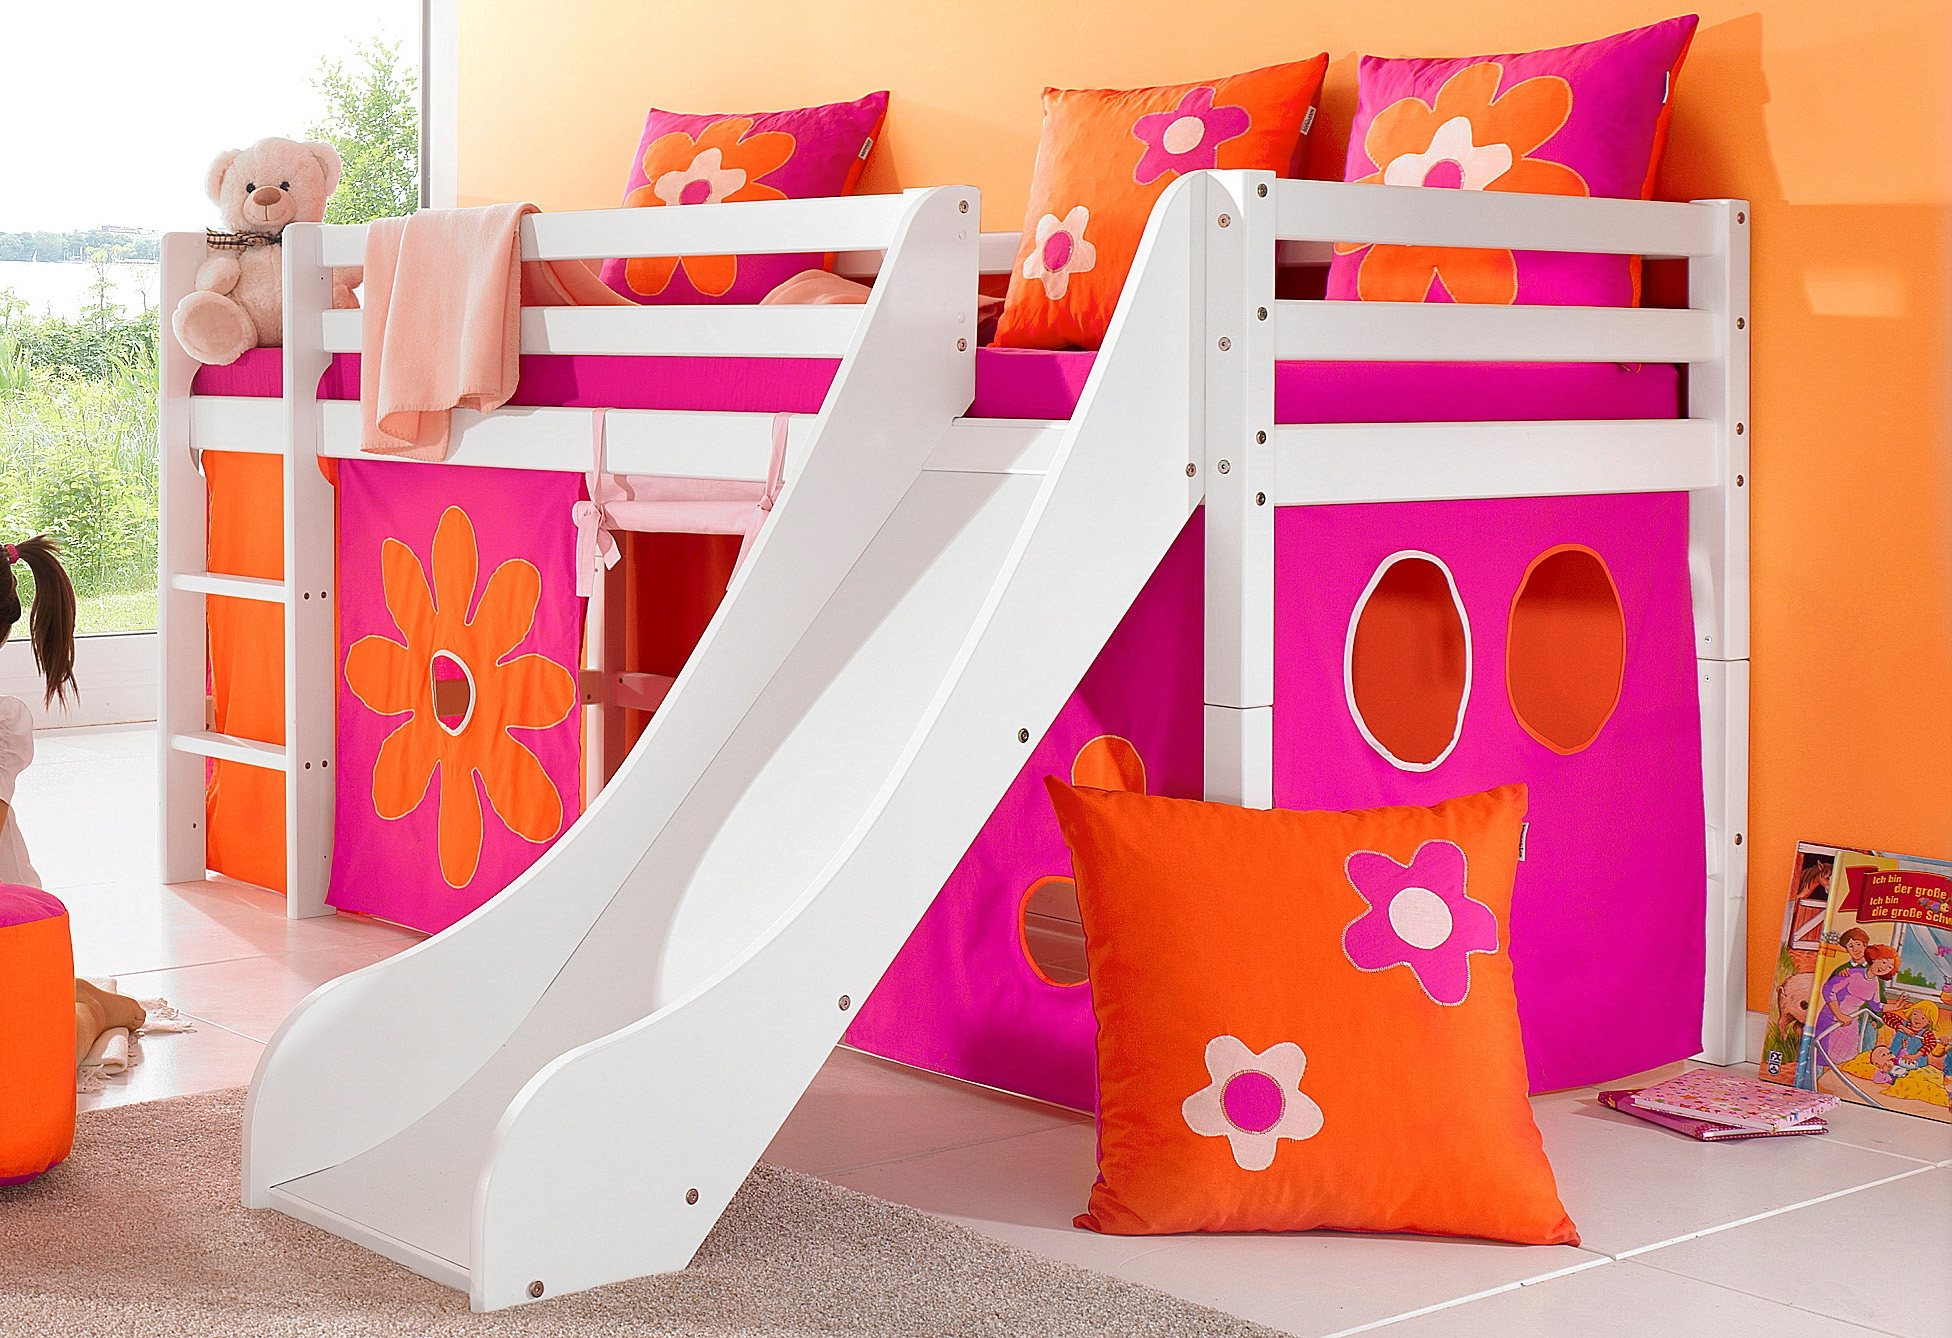 hoppekids halbhohes bett inkl rutsche mit absturzschutzseiten flowerpower bunt bett mit. Black Bedroom Furniture Sets. Home Design Ideas